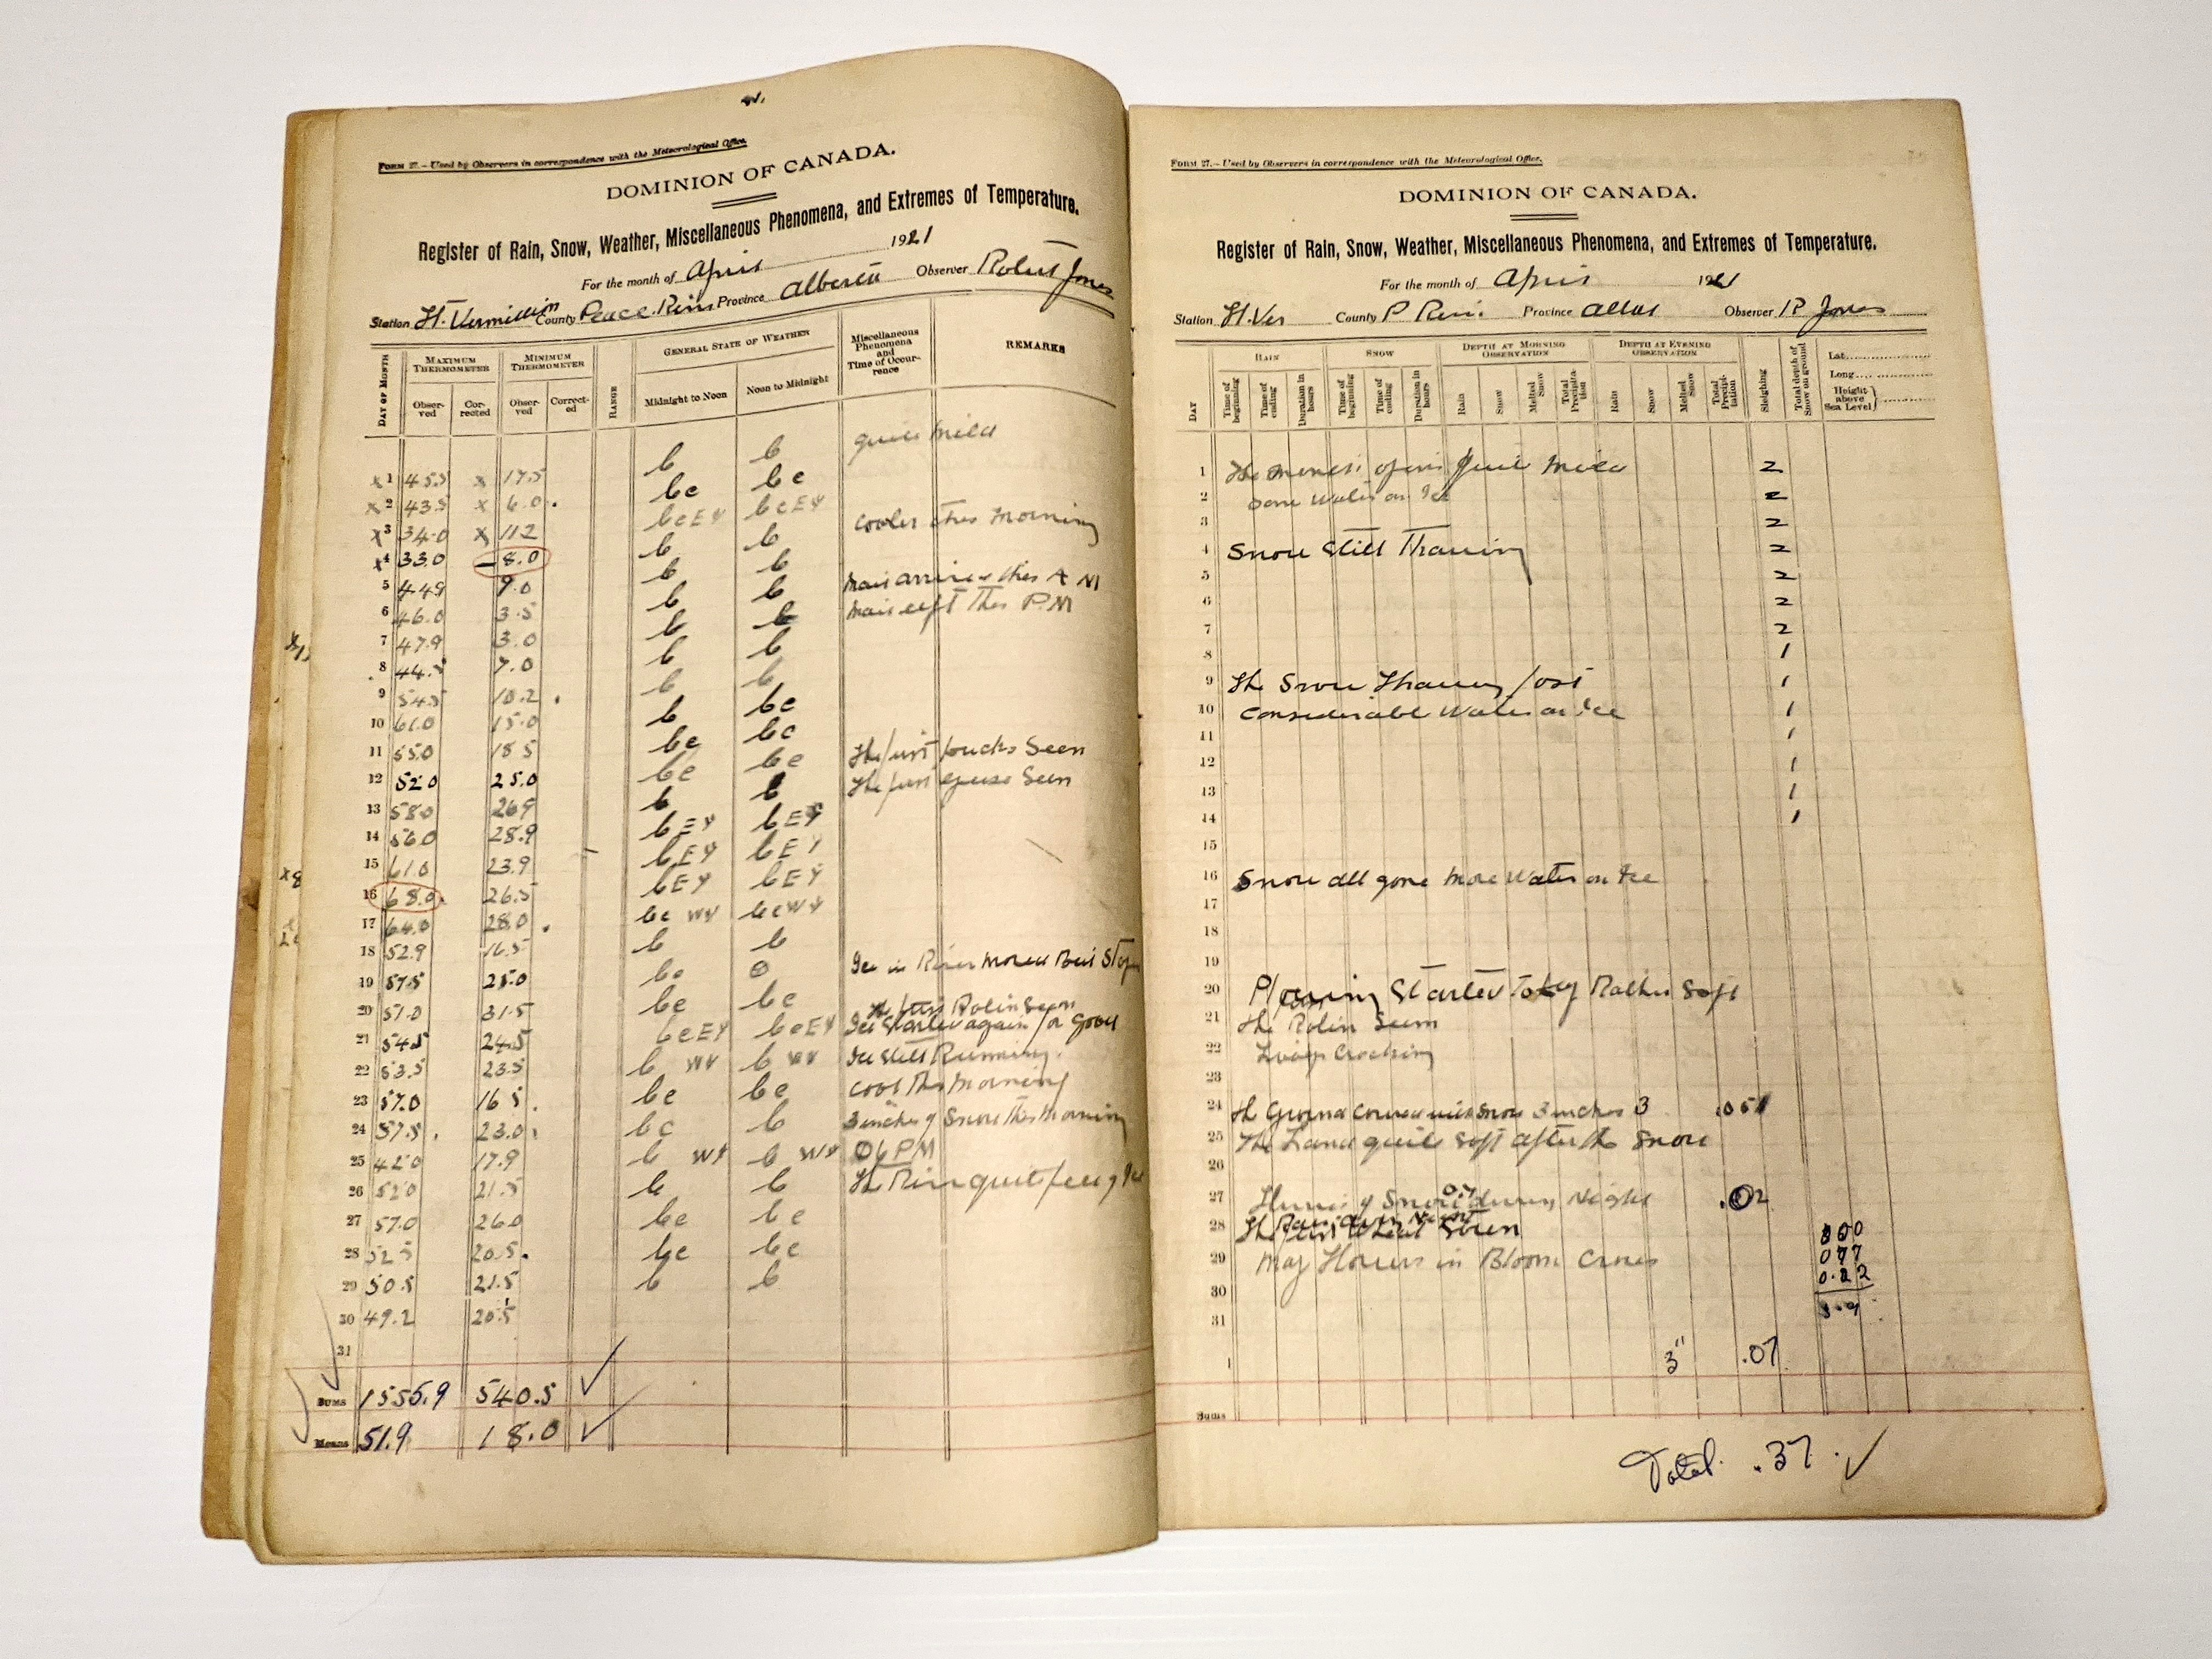 """This week we have the Experimental Farm Meteorological Register from 1921! This booklet contains the entire year of records but we opened up to April to compare the temperatures today with those 100 years ago! The temperature is quite similar to today (April 19th) with highs of 57.5 (13°C) and lows of  25 (-3°C). You'll notice on April 16th it is noted """"Snow all gone more water on ice"""", however on the 24th 3 inches of snow fell - lets hope it is not the same this year!  19/04/2021 Fort Vermilion Experimental Farm"""